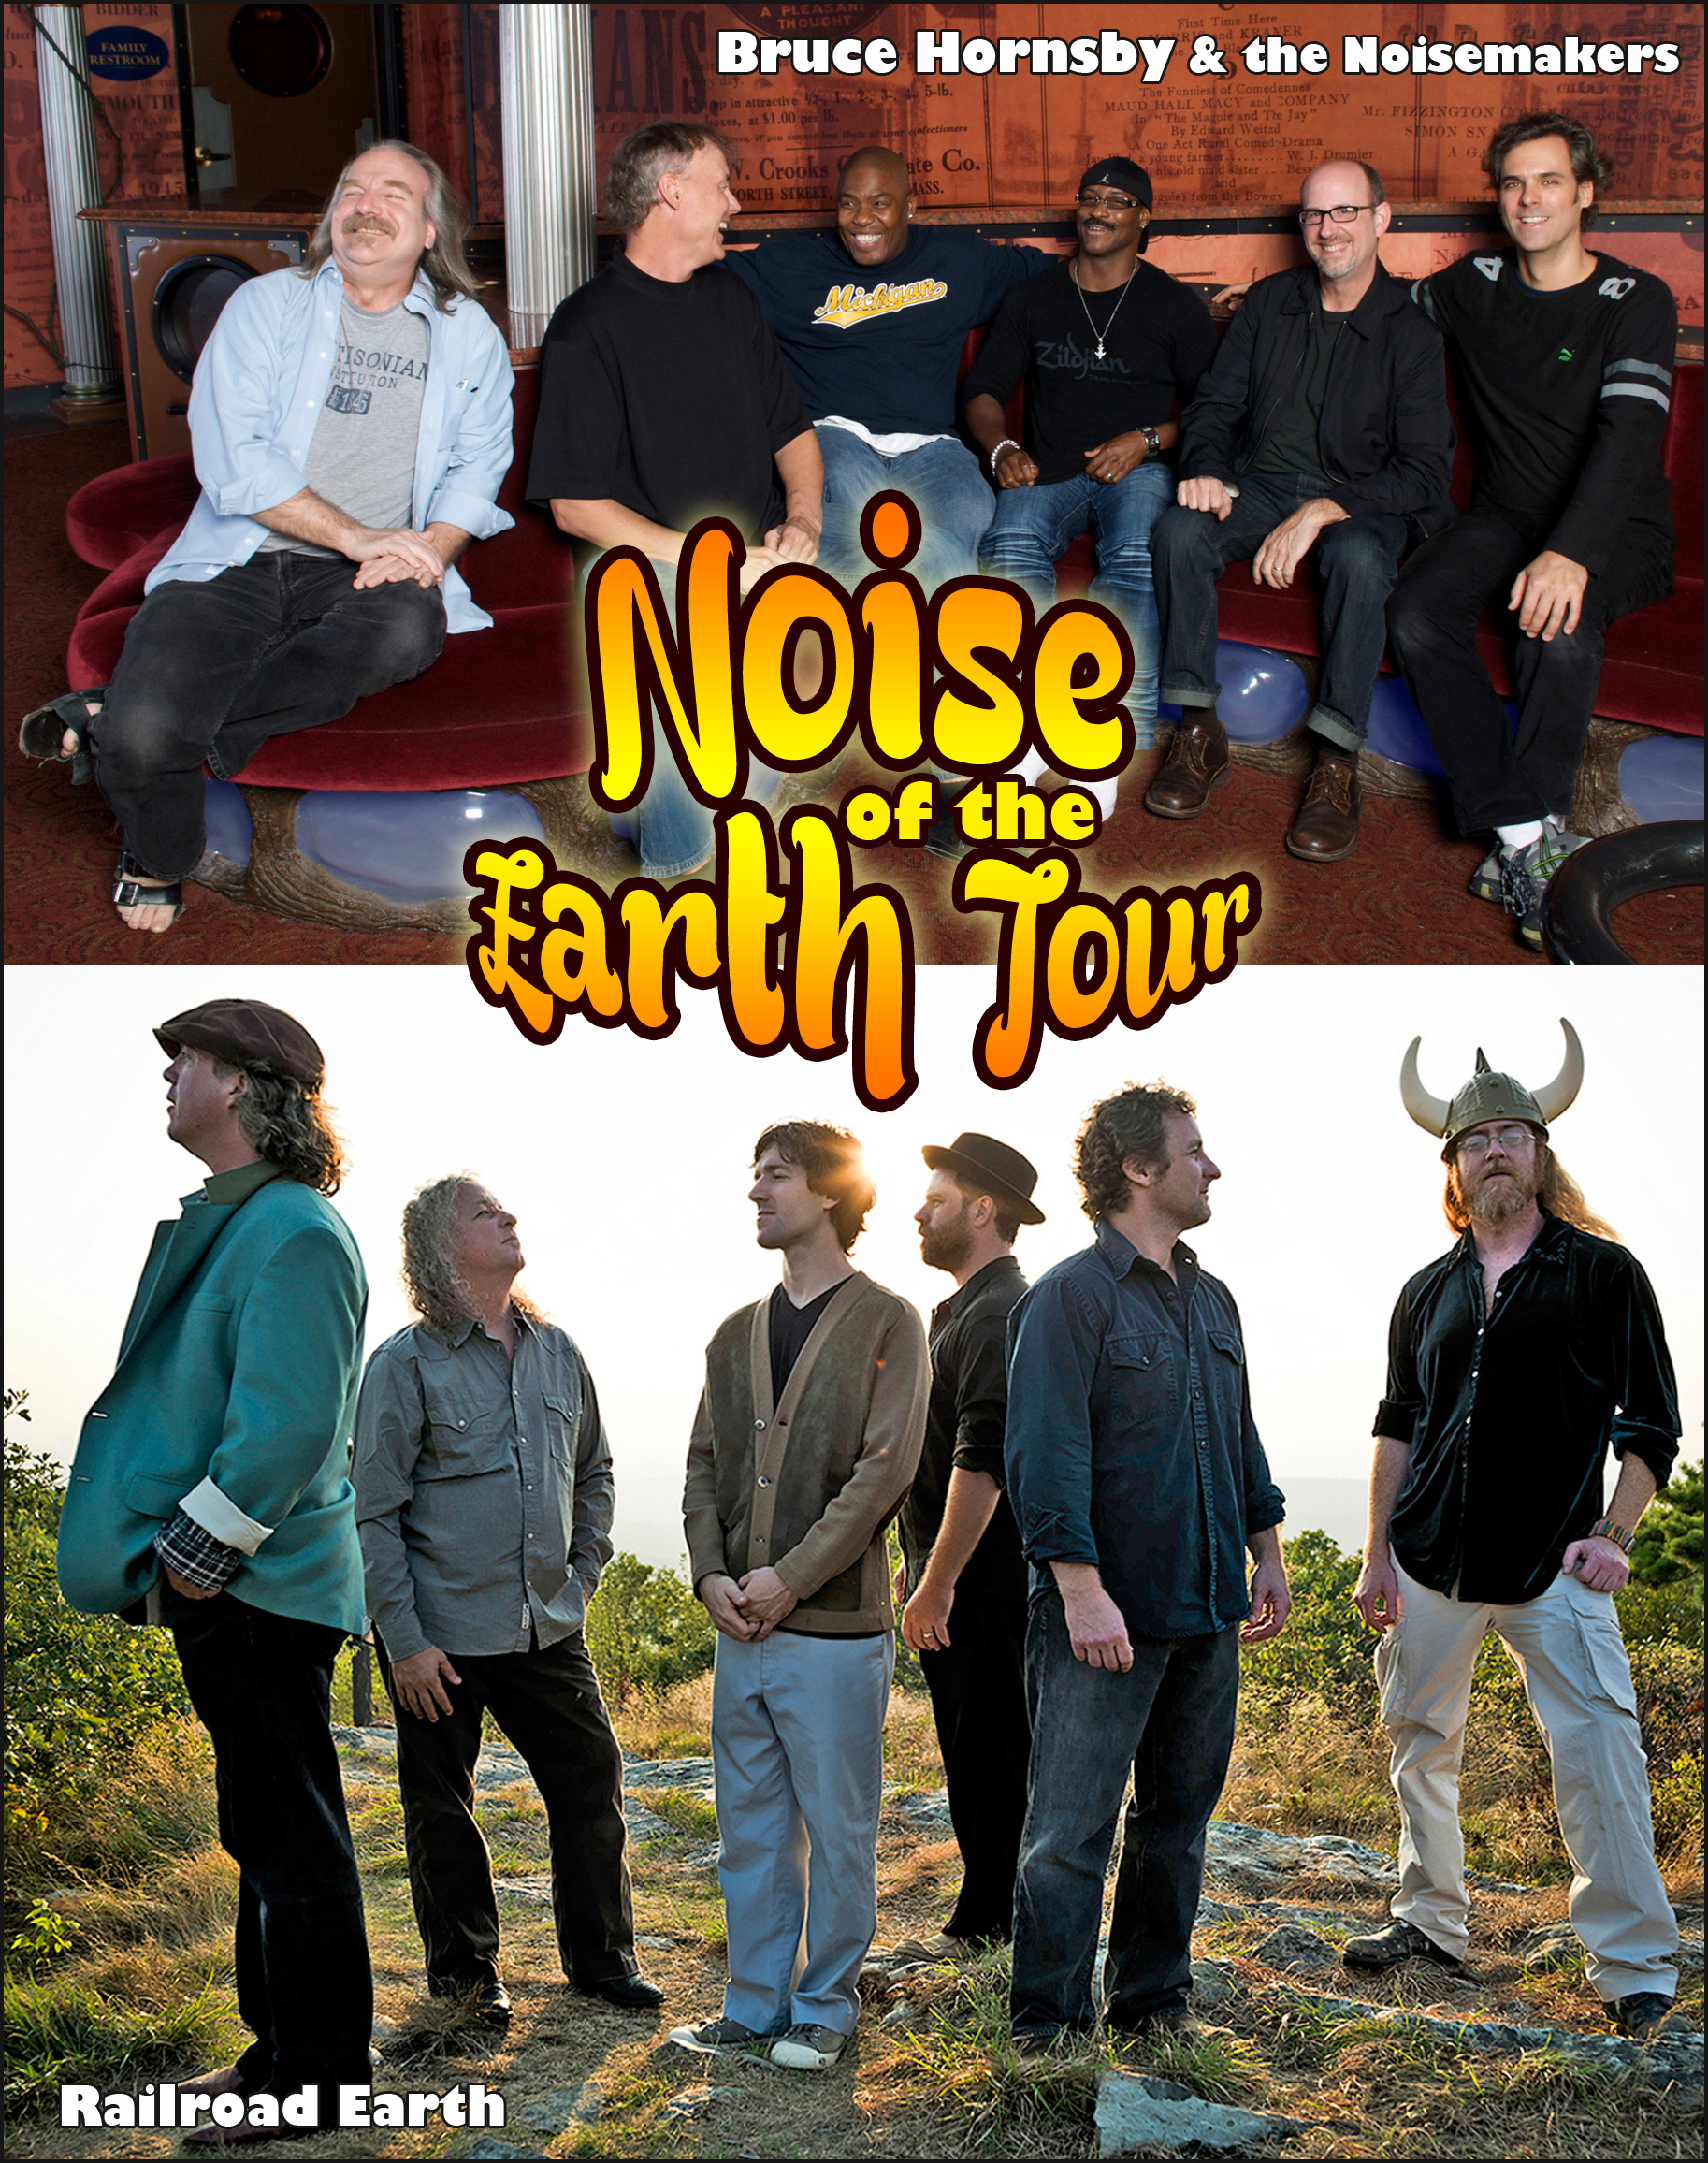 Noise of the Earth Tour to kick off at Cascadia Music Festival